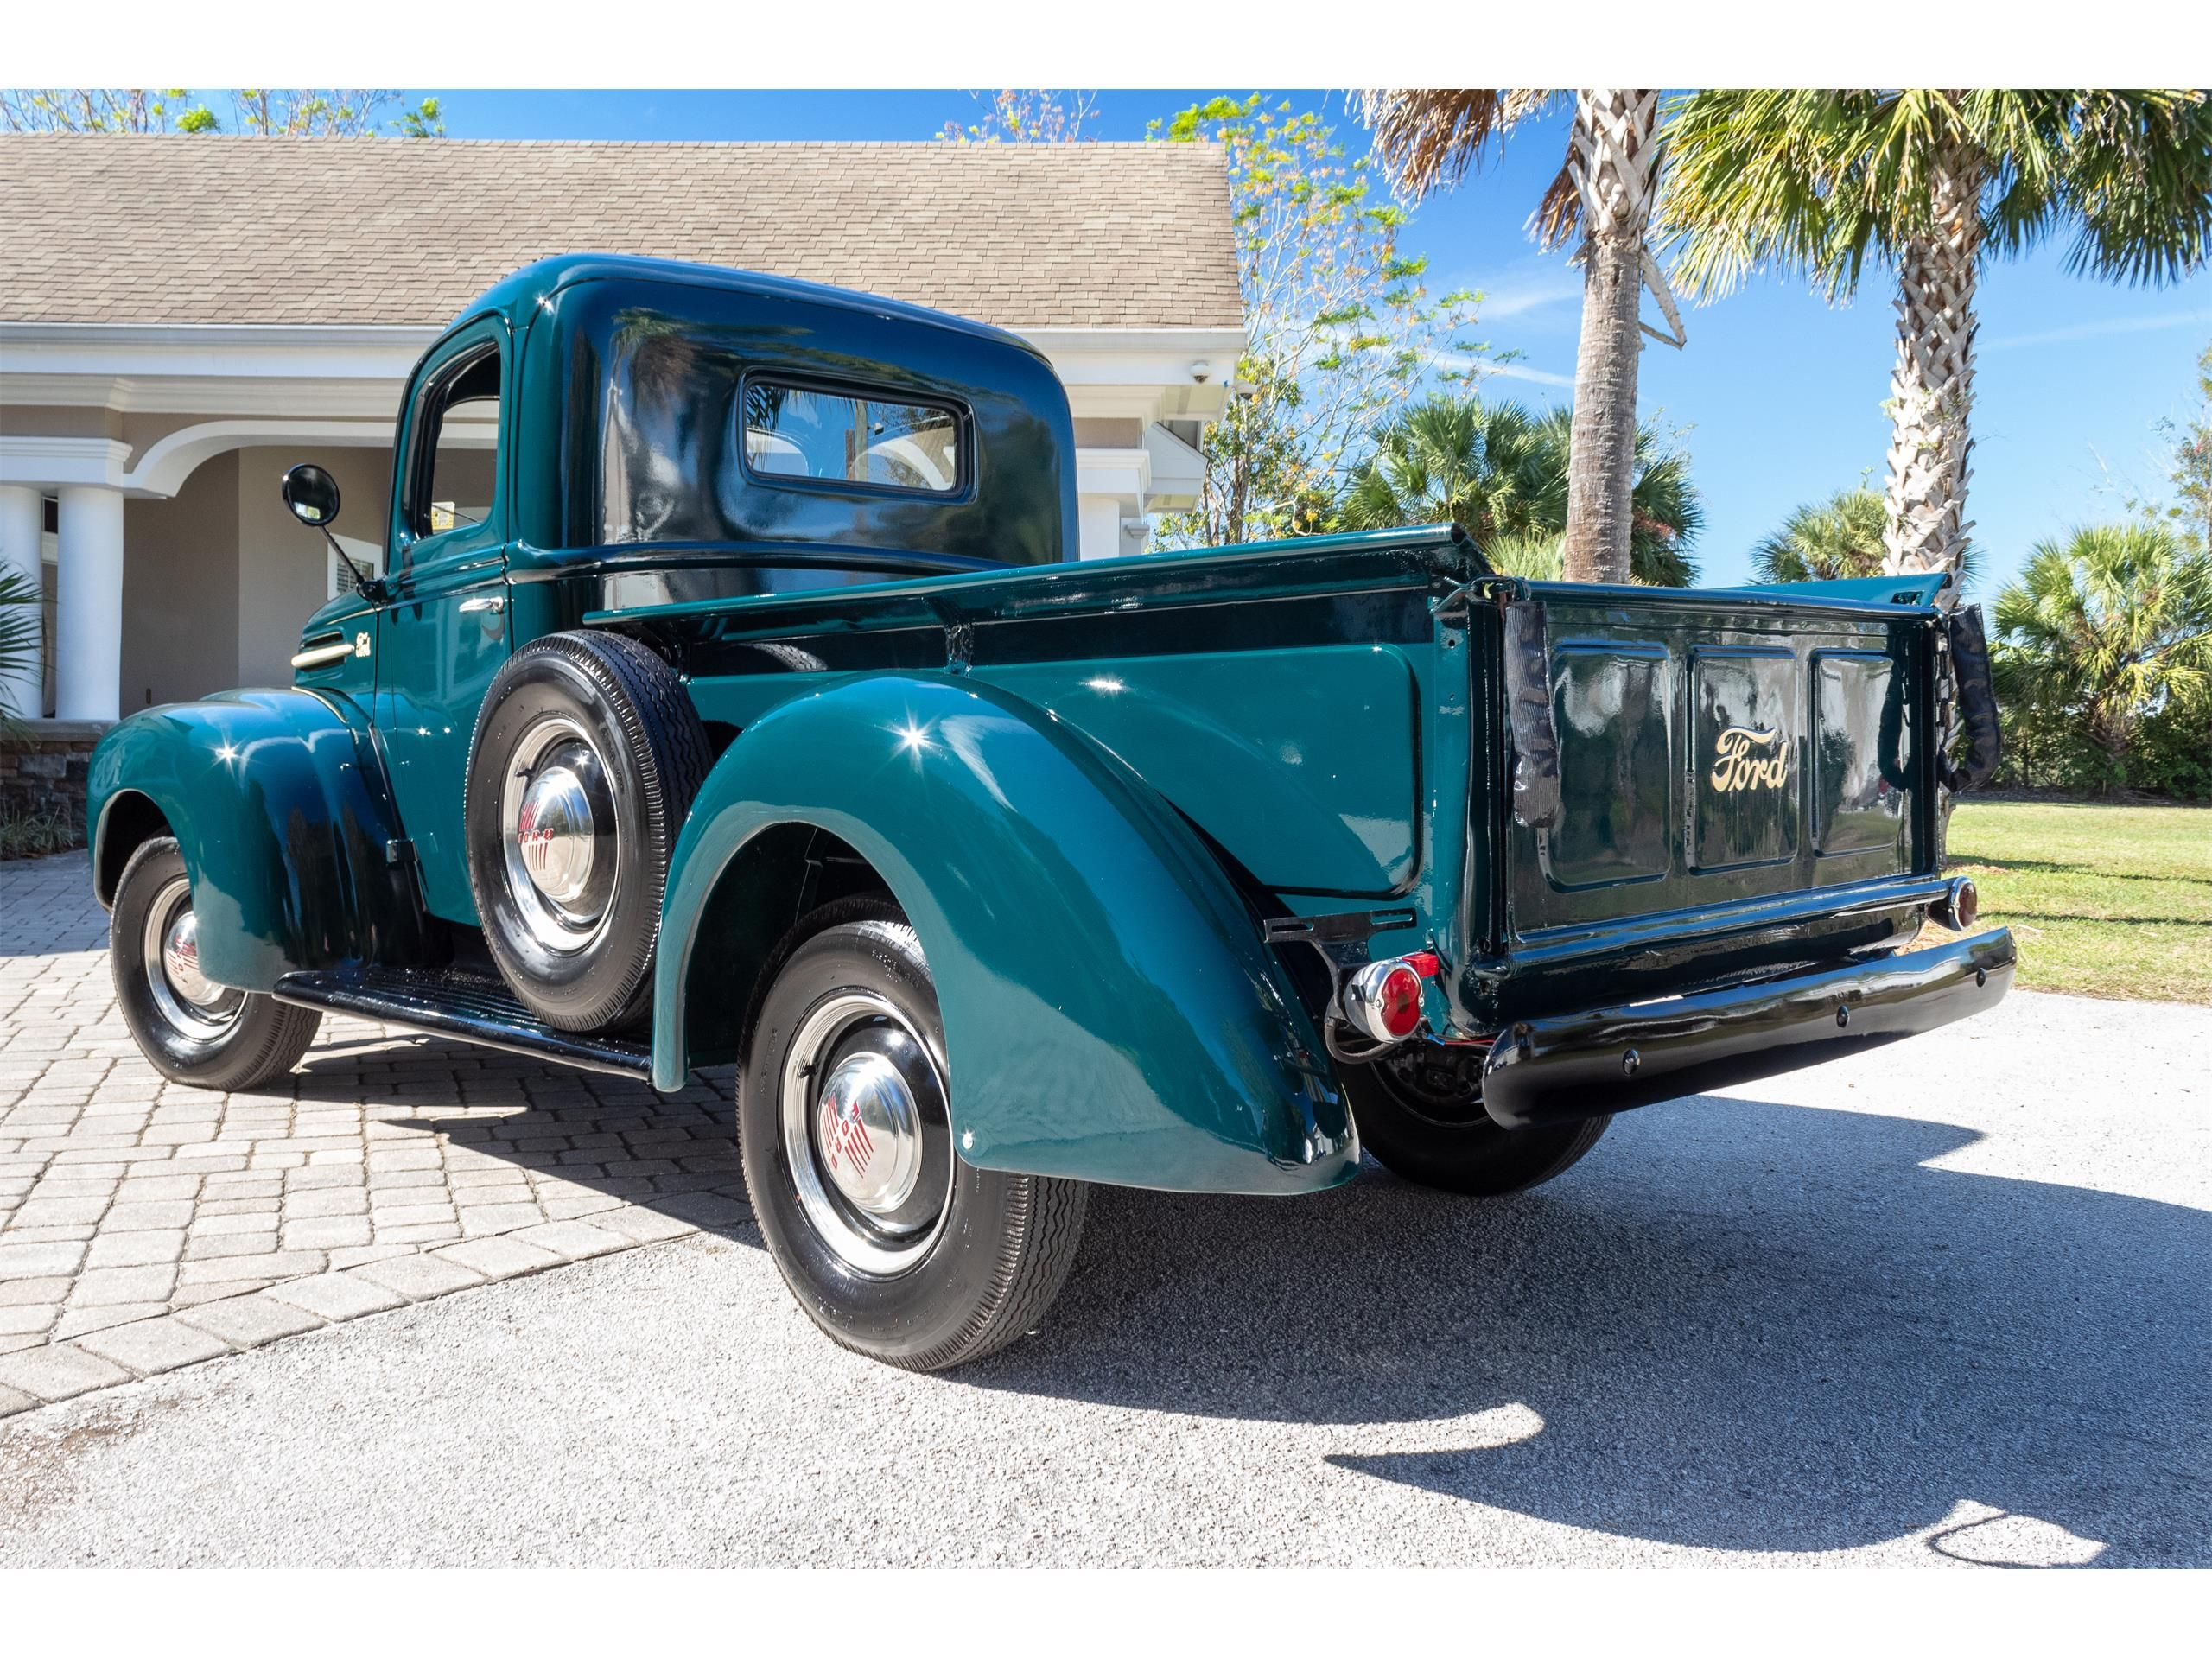 1945 Ford 1 2 Ton Pickup For Sale Listing Id Cc 1168337 Classiccars Com Driveyourdream Classictruck Ford Ford Classic Truck Pickups For Sale